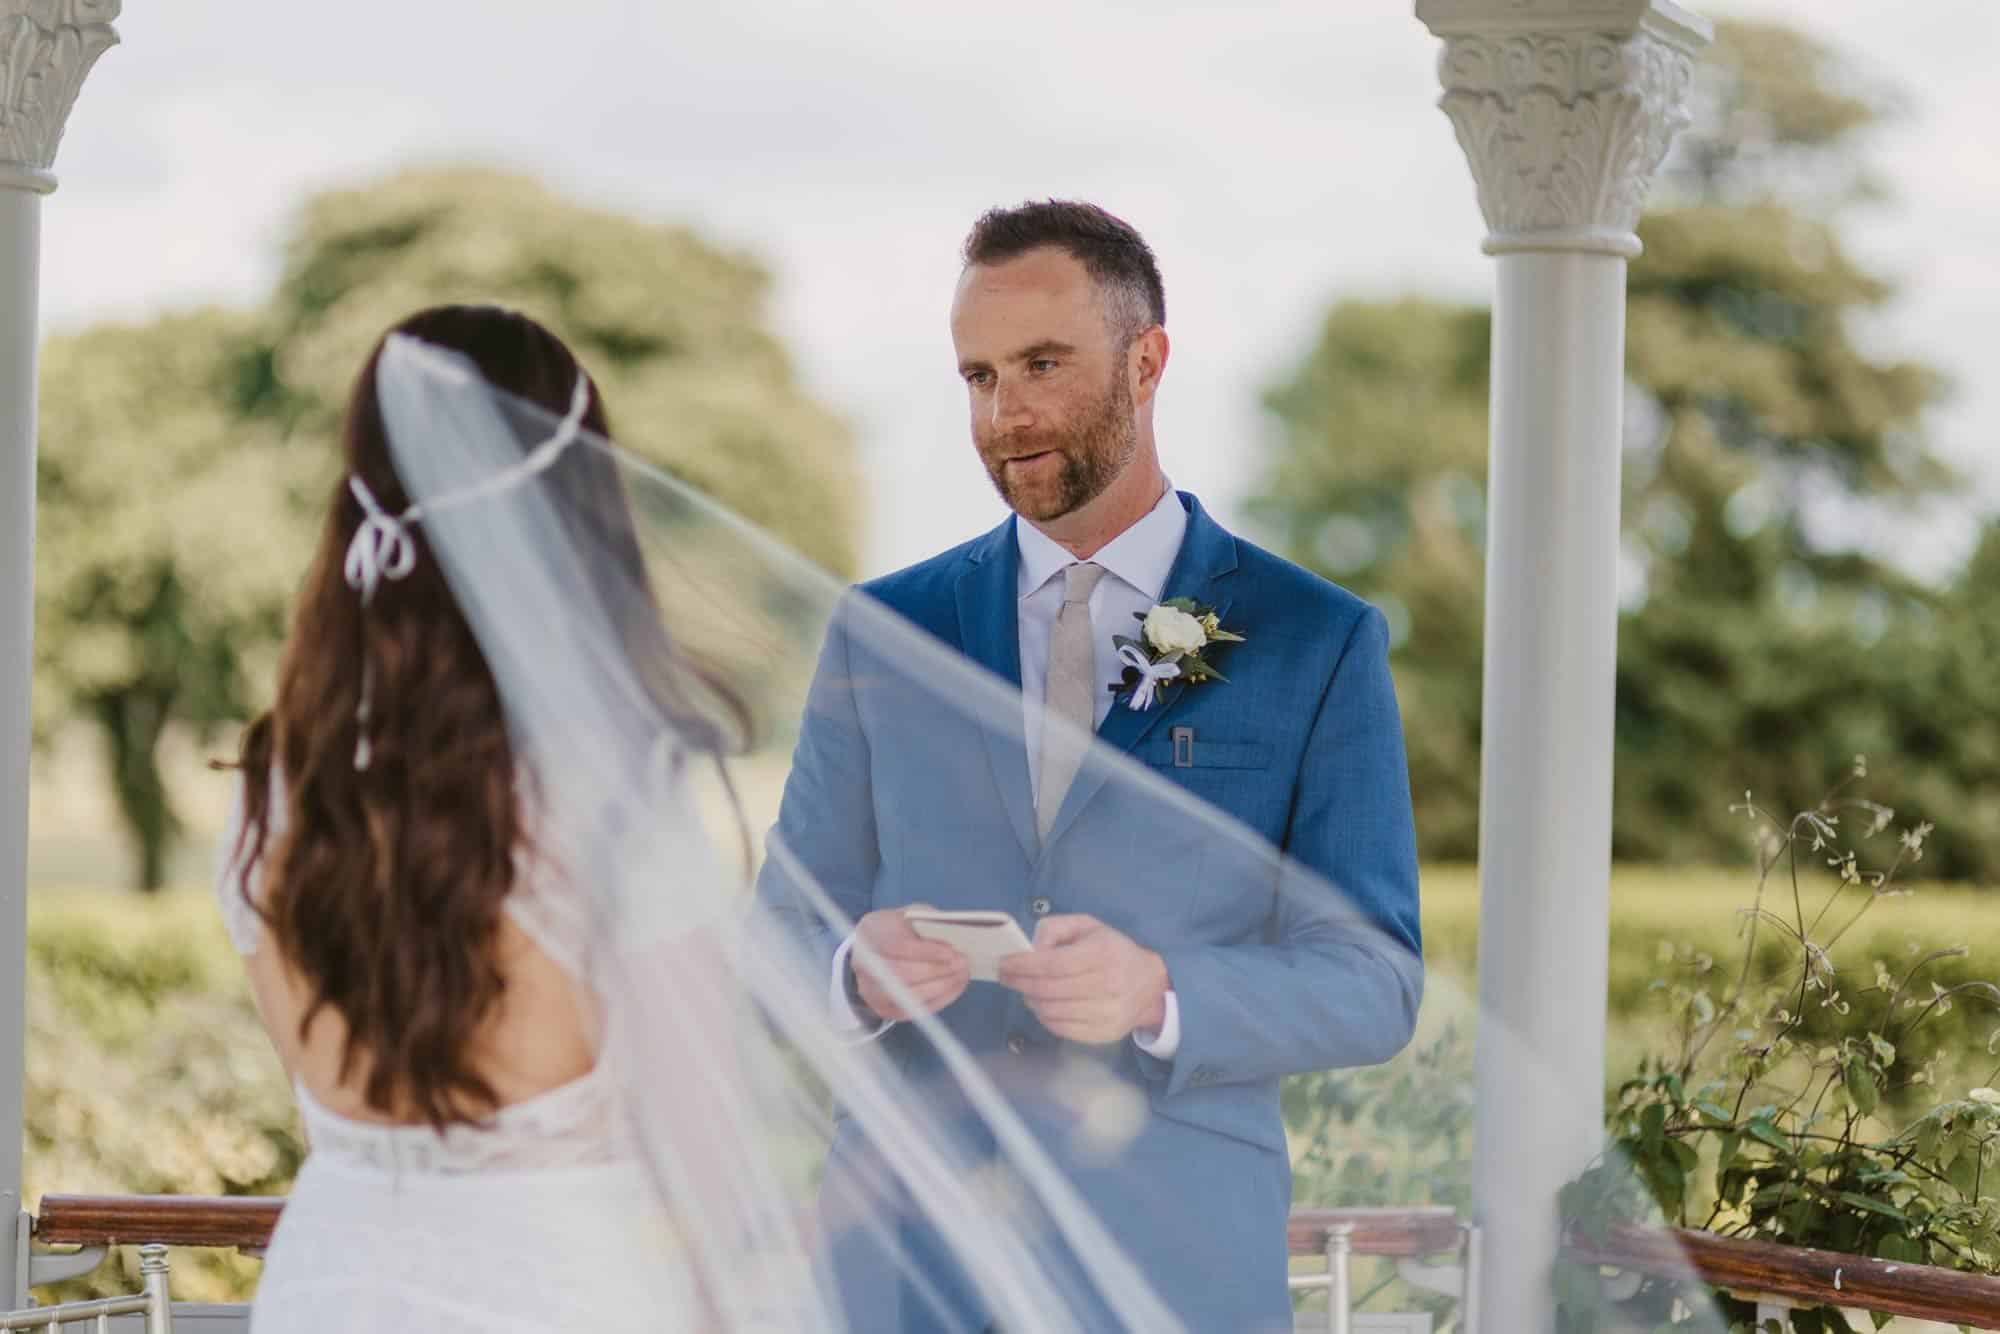 Elopement videographer Ireland, groom reading vows